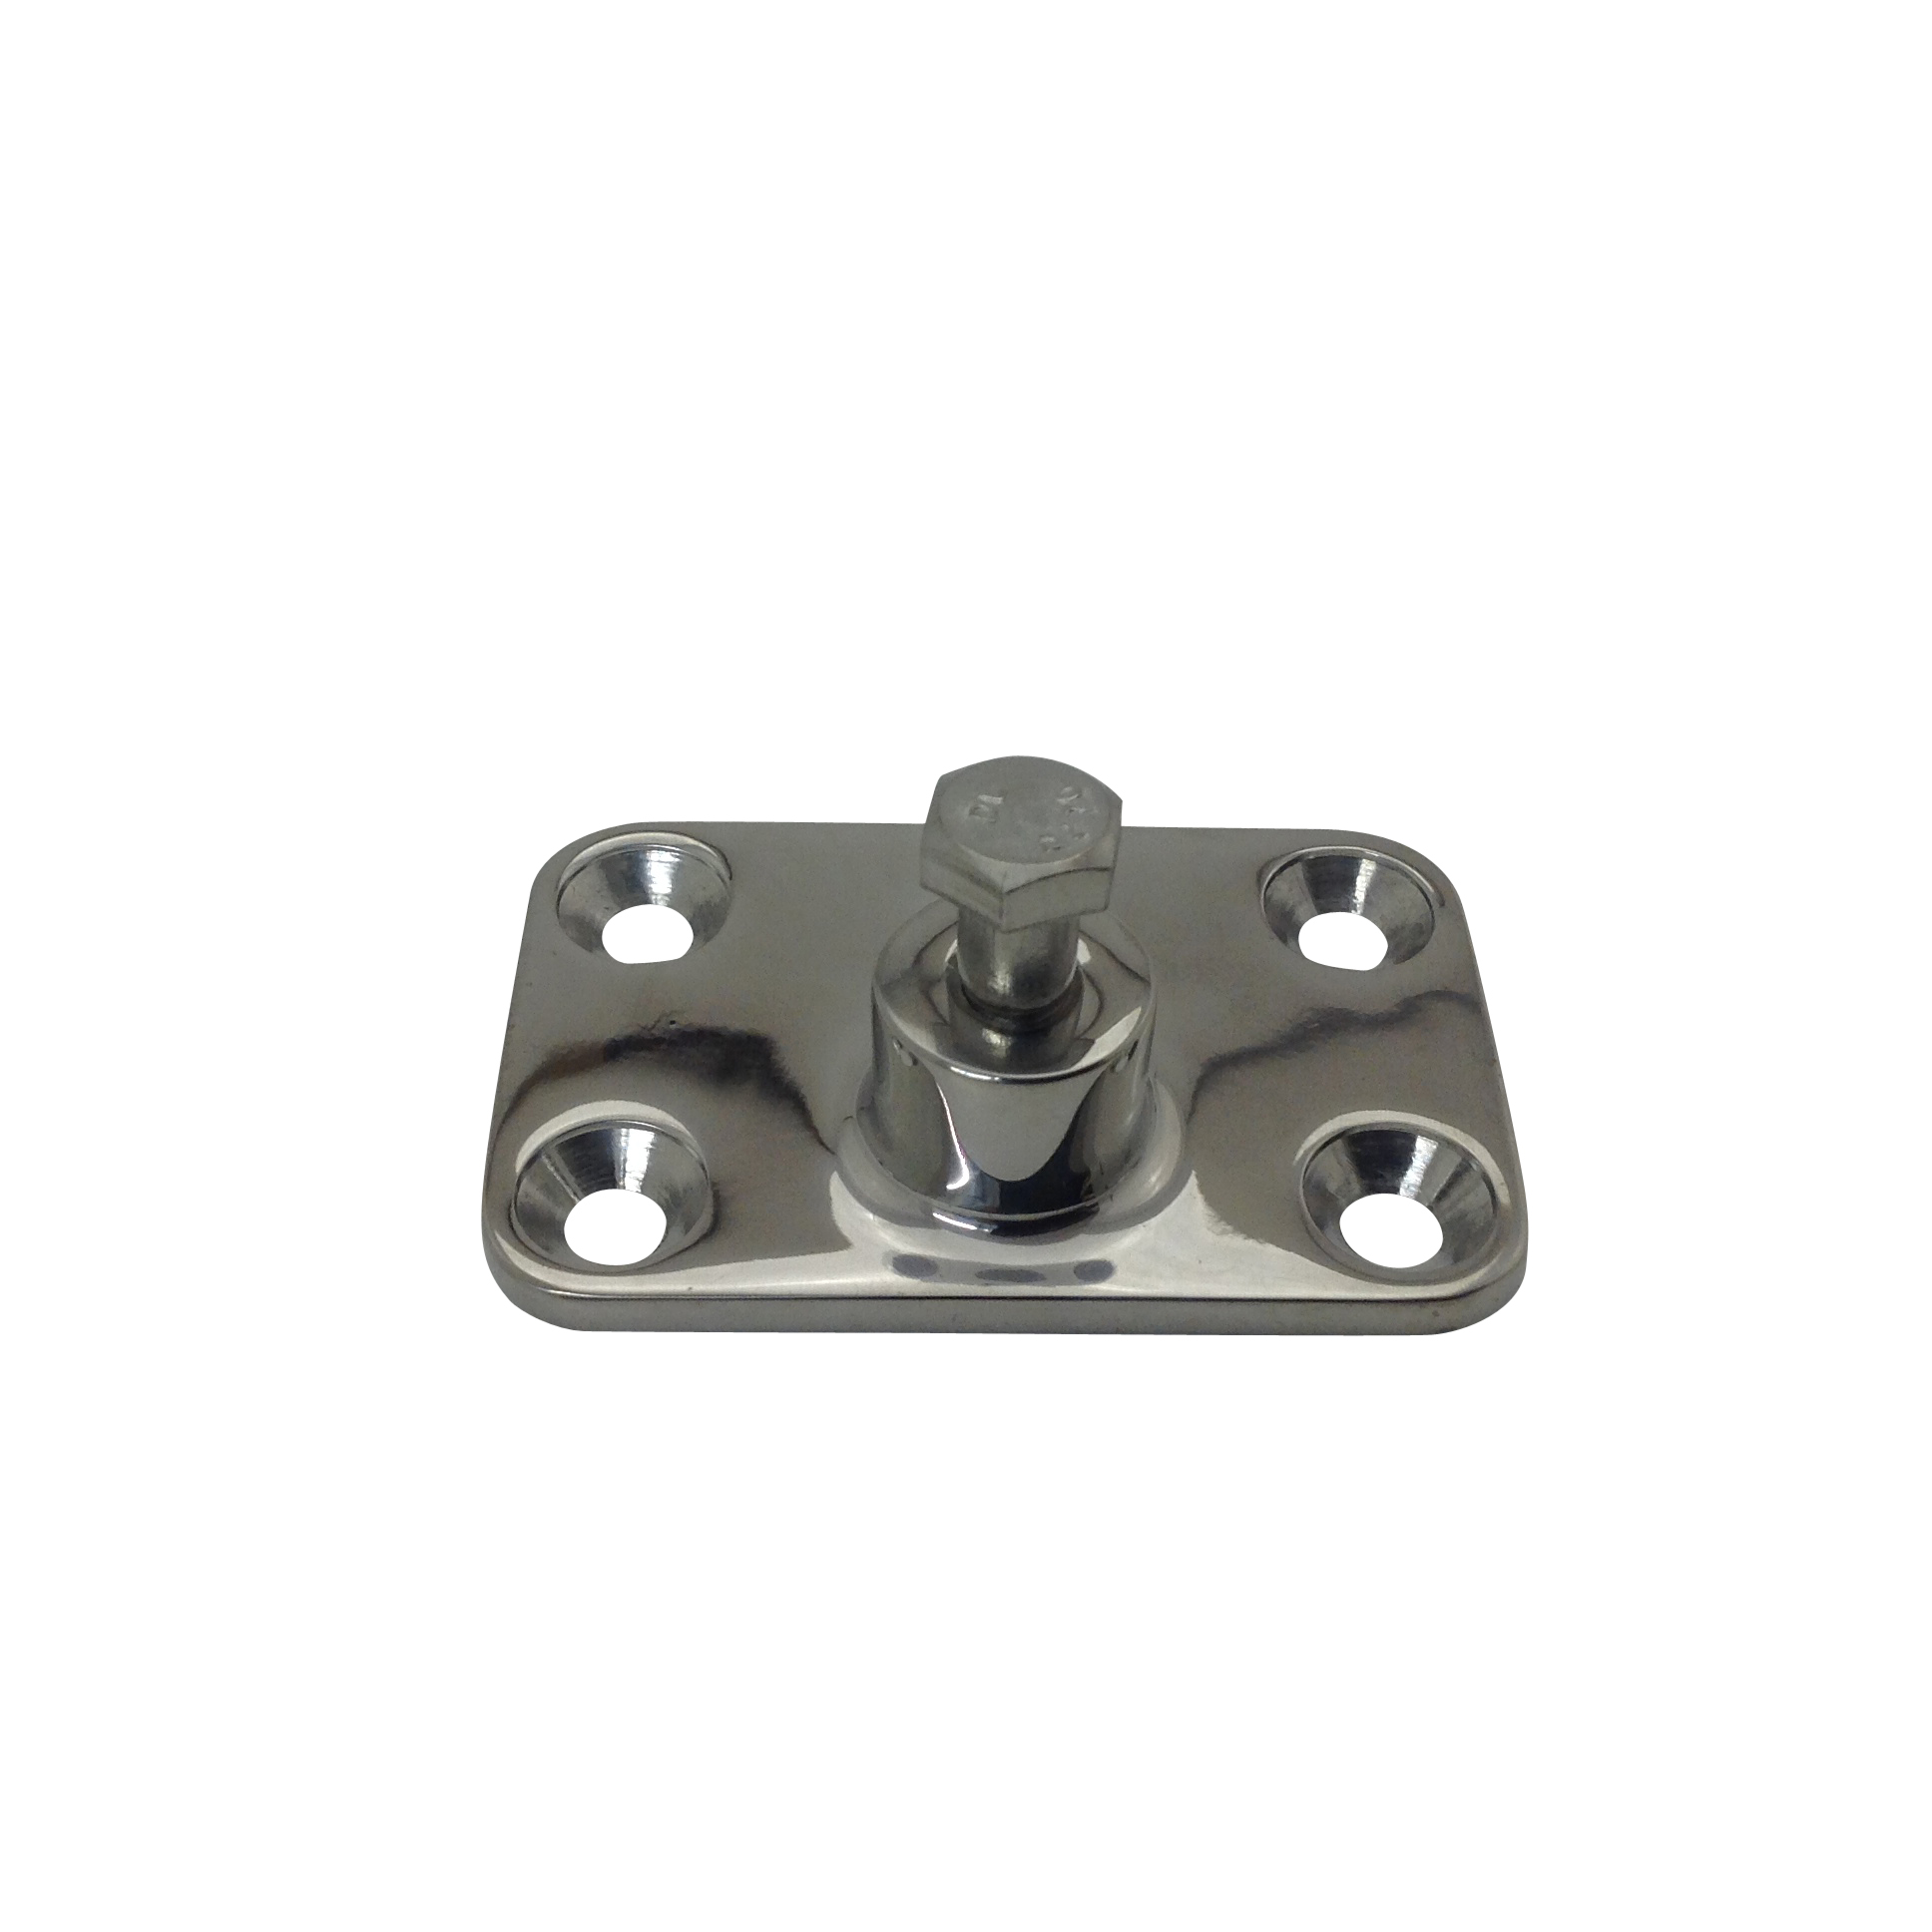 Stainless Steel 4 Hole Bimini Side Mount